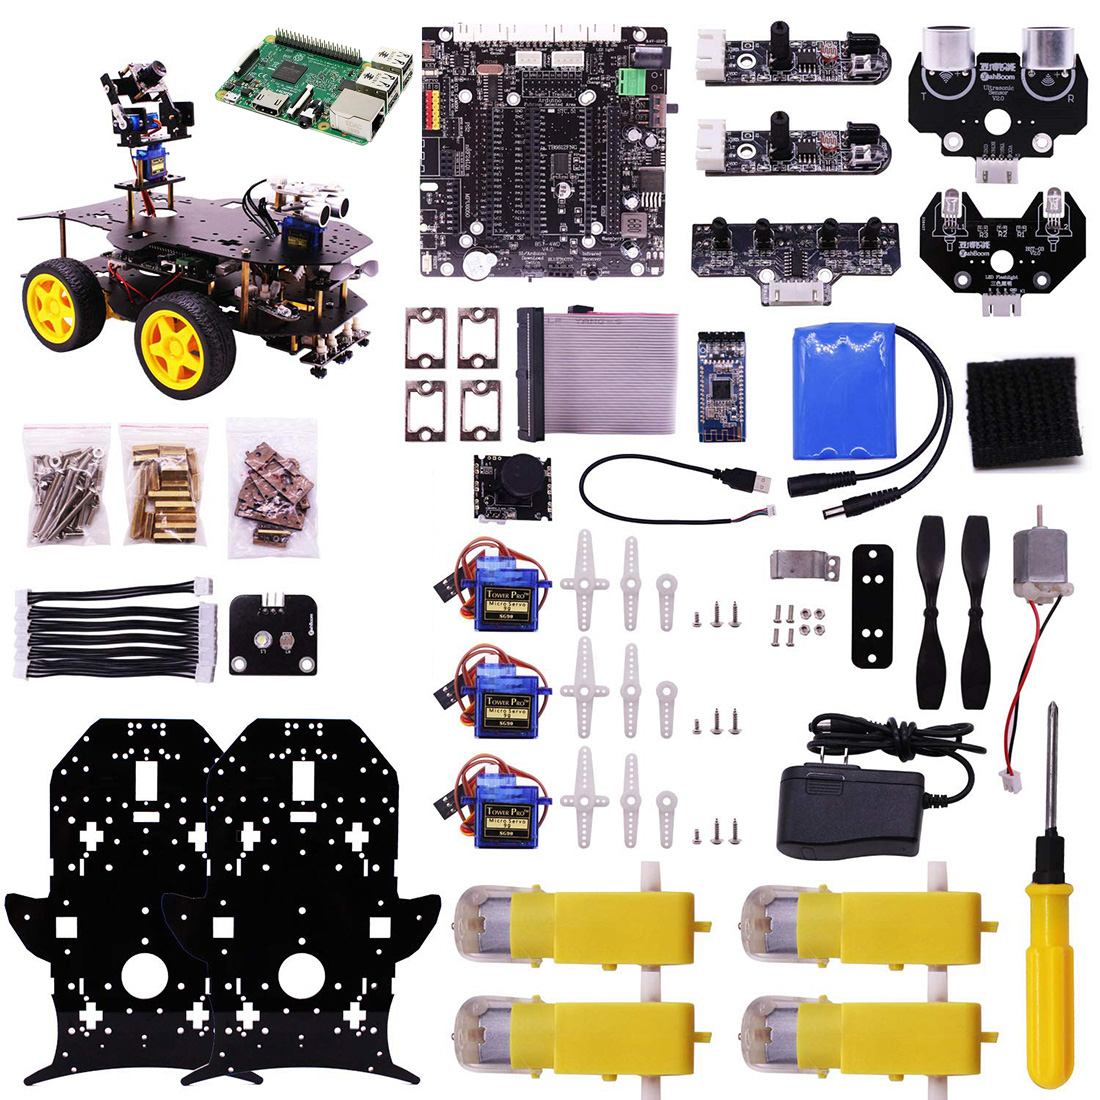 Bluetooth Ultimate Starter Kit Programmable Smart Robot Car Kit With Camera 4WD Electronics Education For Raspberry 4B (1/2/4G)